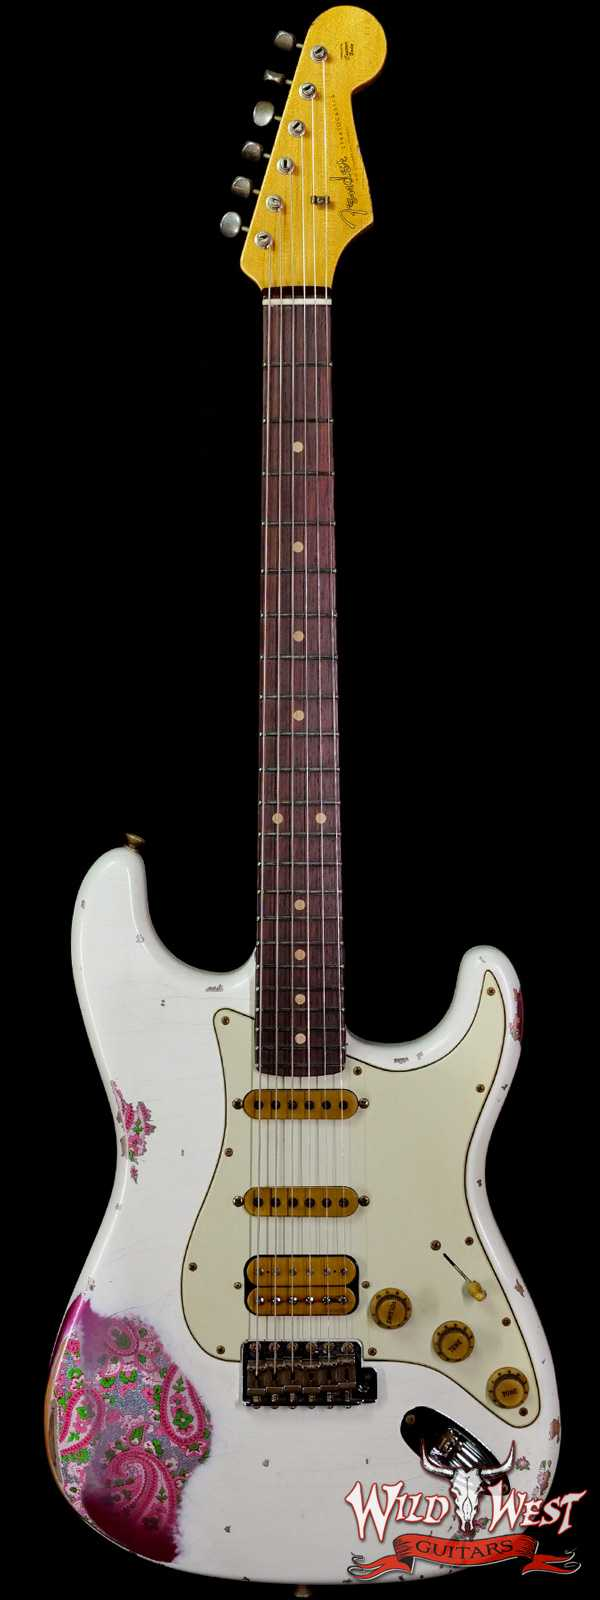 Fender Custom Shop Wild West White Lightning 2.0 Stratocaster HSS Rosewood Board 22 Frets Heavy Relic Pink Paisley